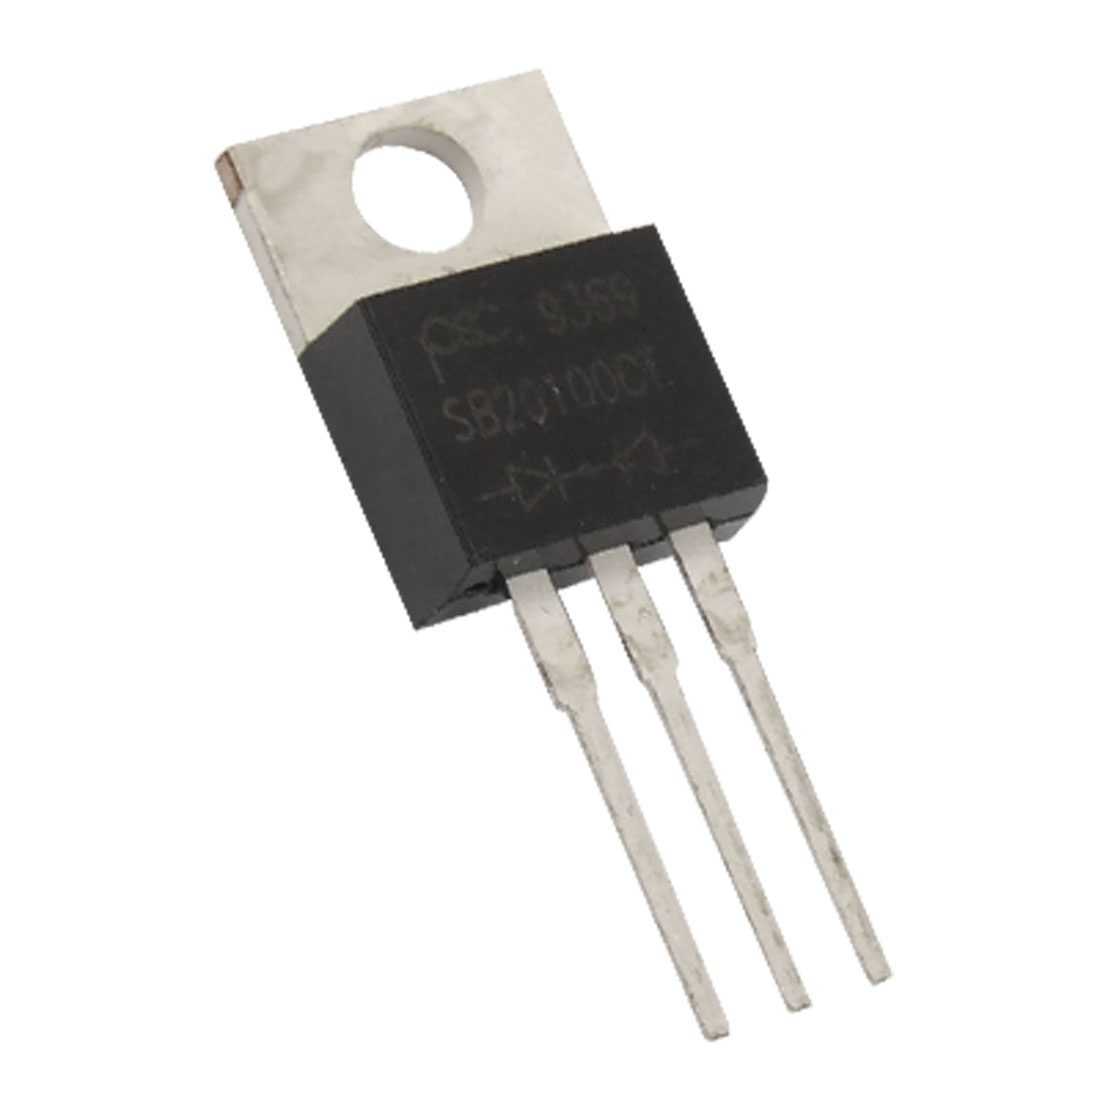 SB20100CT 20A 100V Schottky Barrier Rectifier TO-220AB